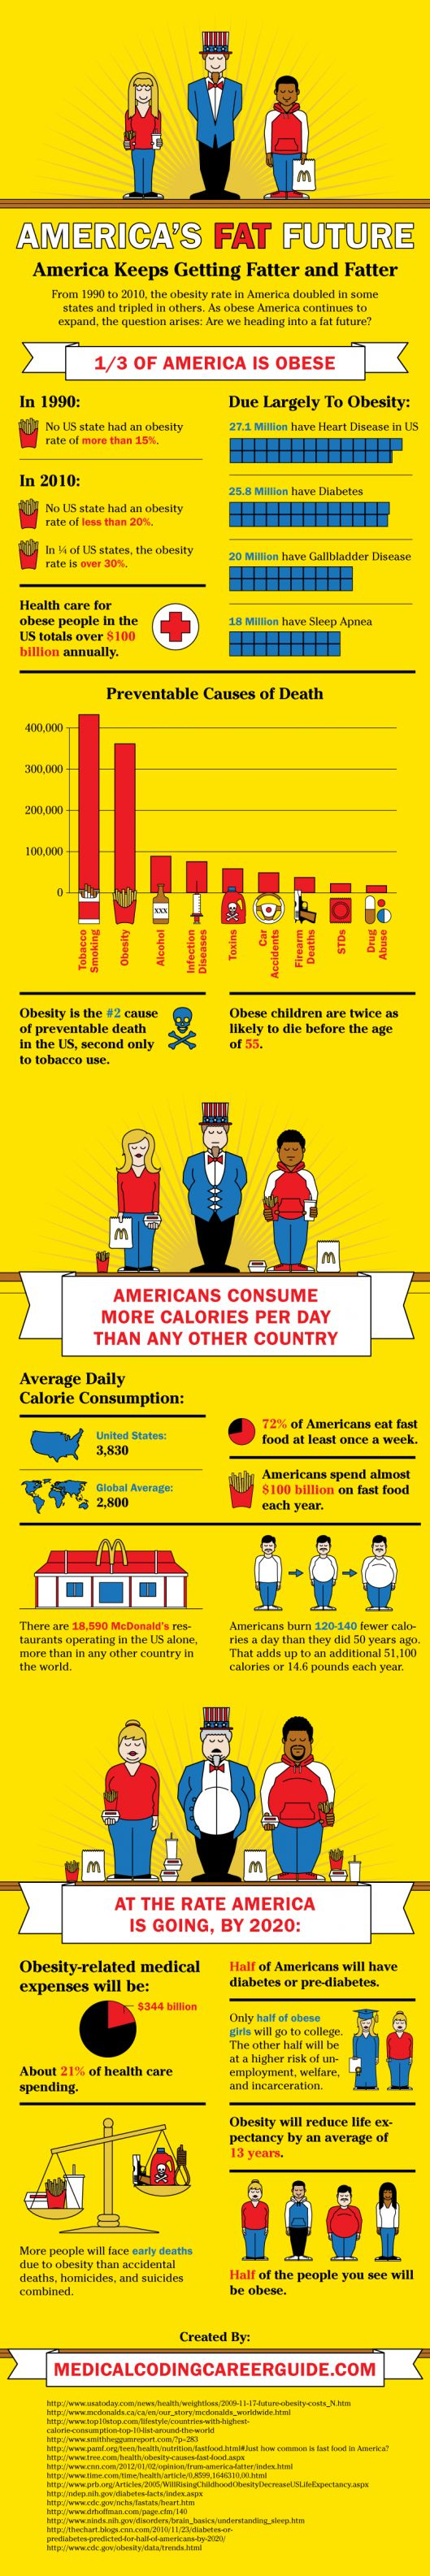 best obesity images childhood obesity fitness from 1990 to 2010 the obesity rate in america doubled in some states and tripled